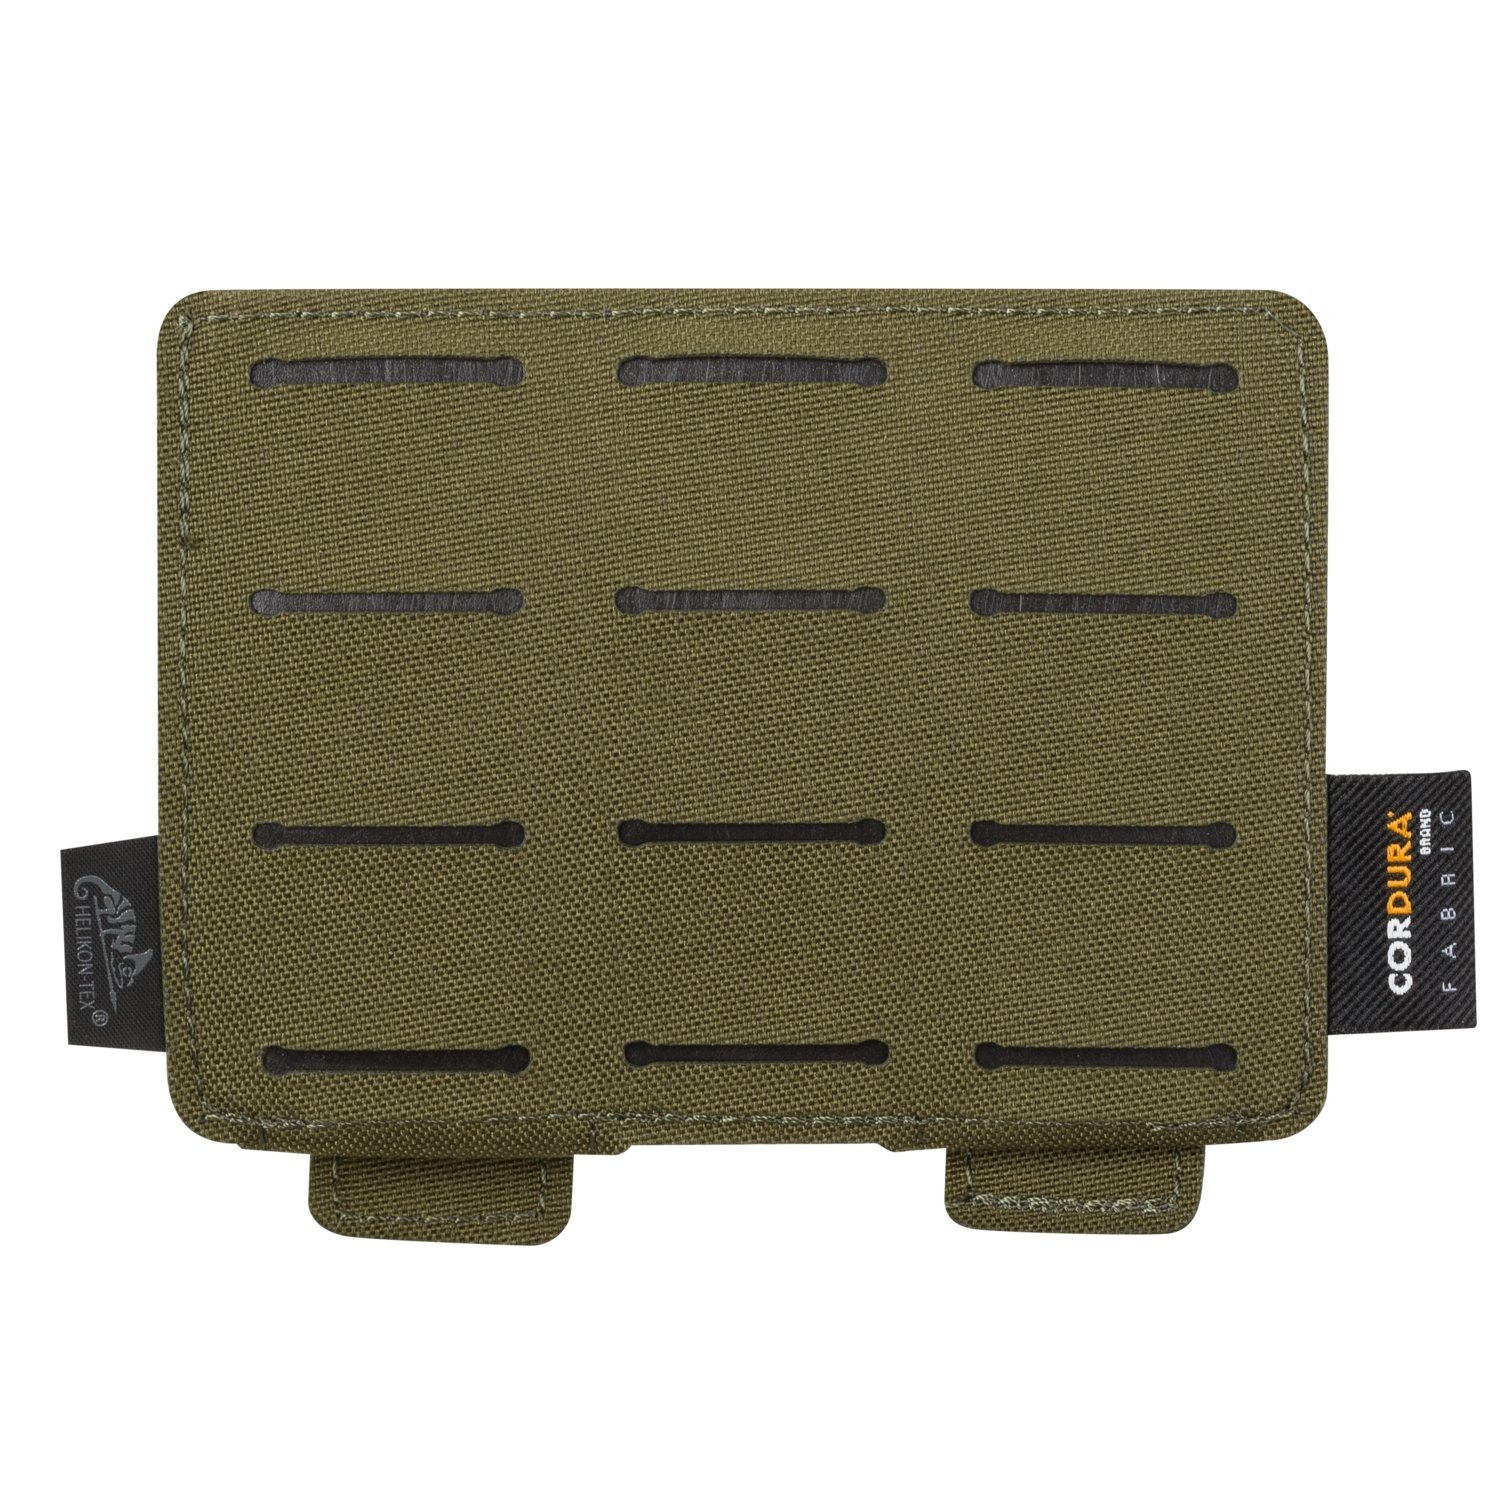 Image of Adapter bma helikon belt molle adapter 3 - cordura - olive green - one size (in-bm3-cd-02)